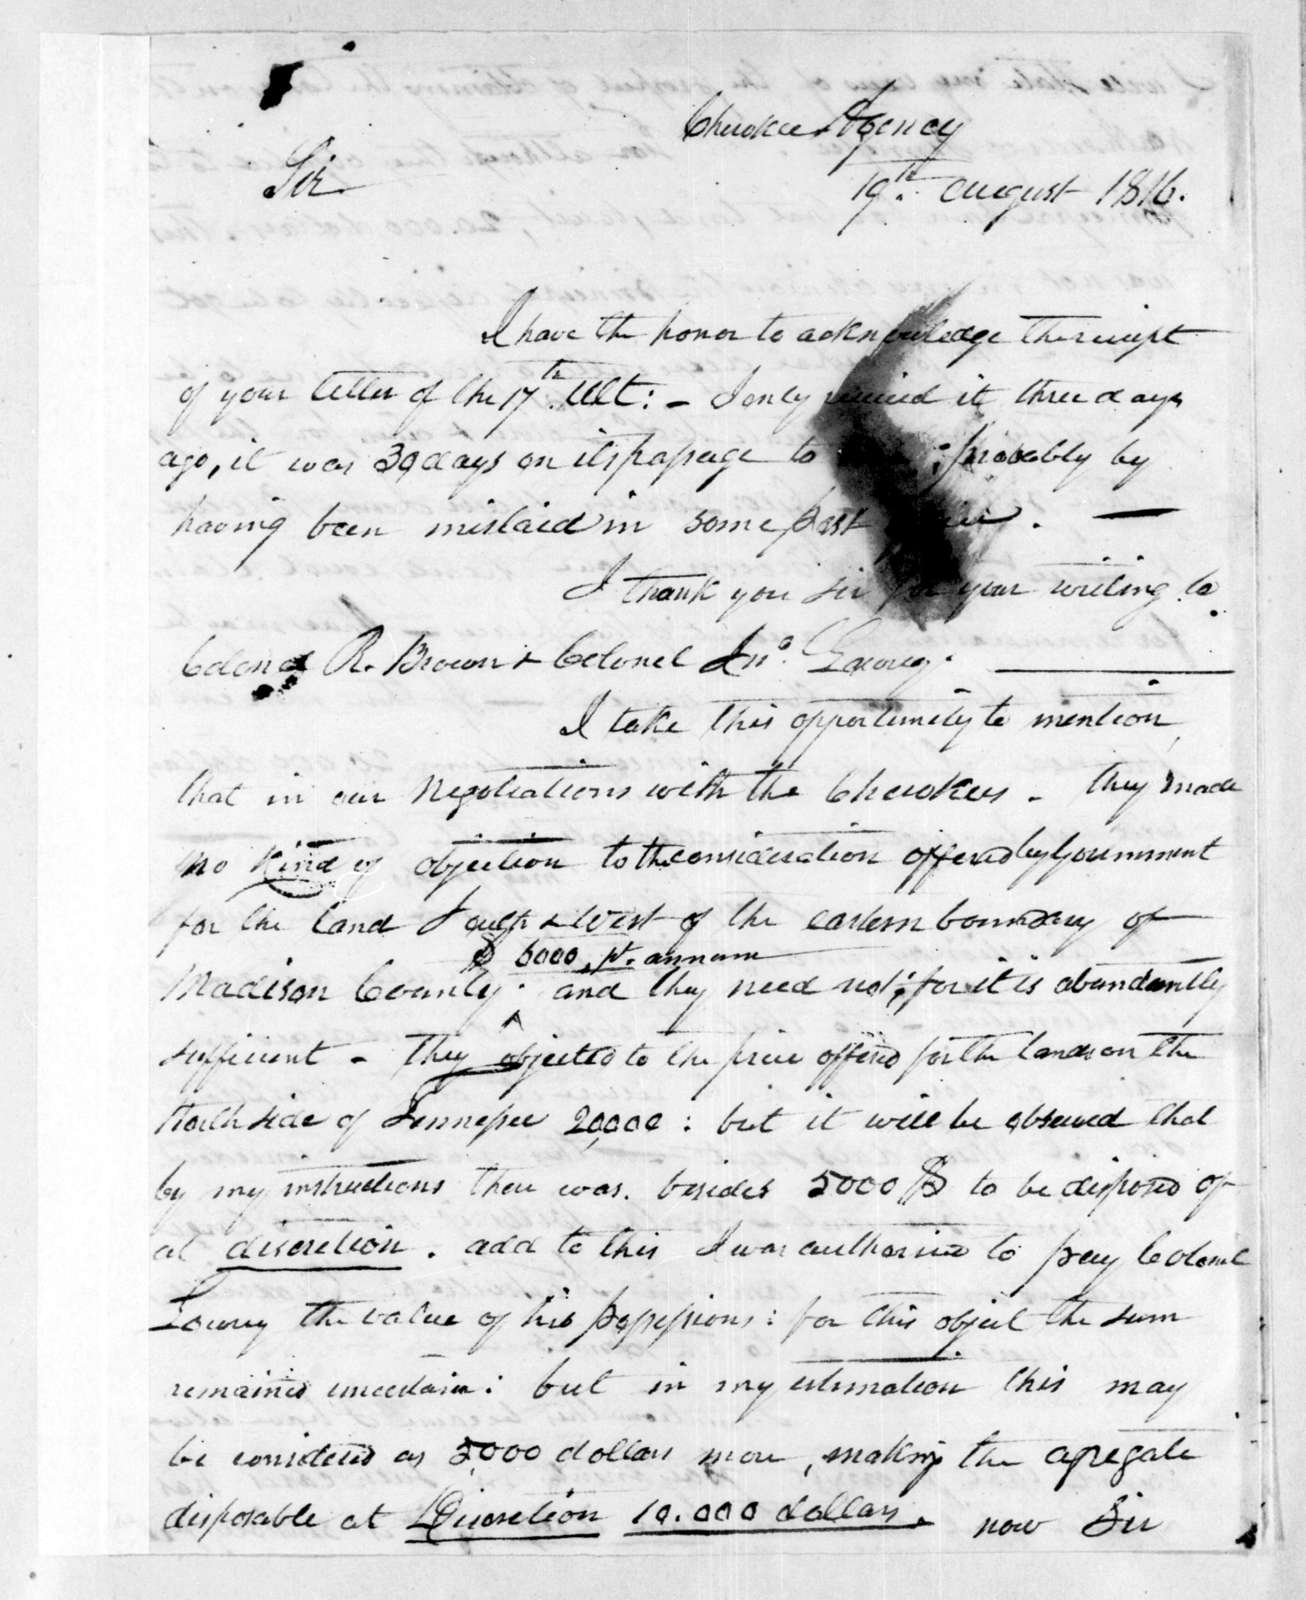 Return Jonathan Meigs to Andrew Jackson, August 19, 1816